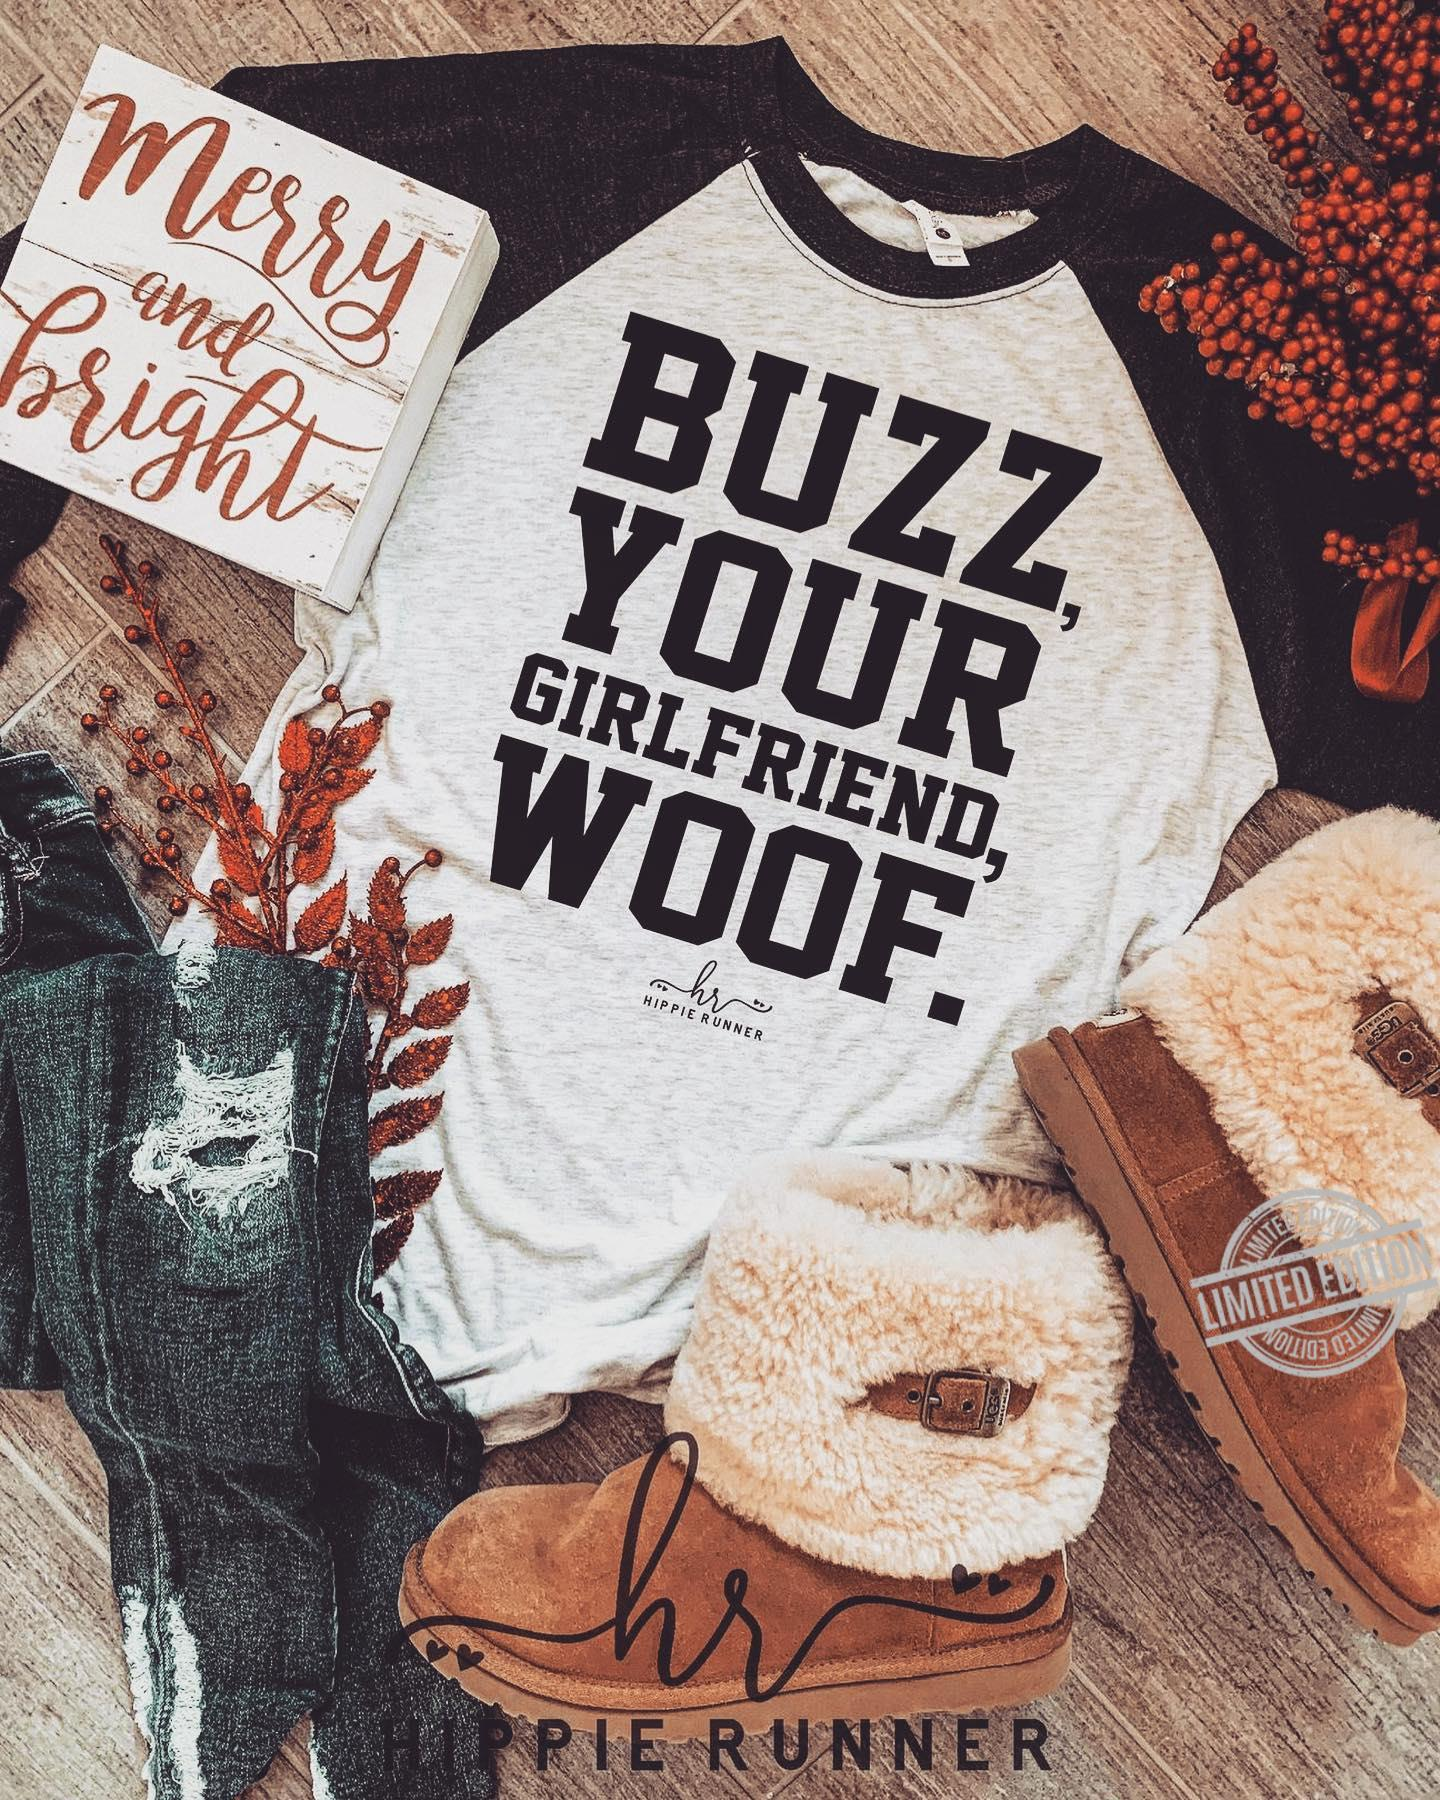 Buzz Your Girlfriend Woof Shirt